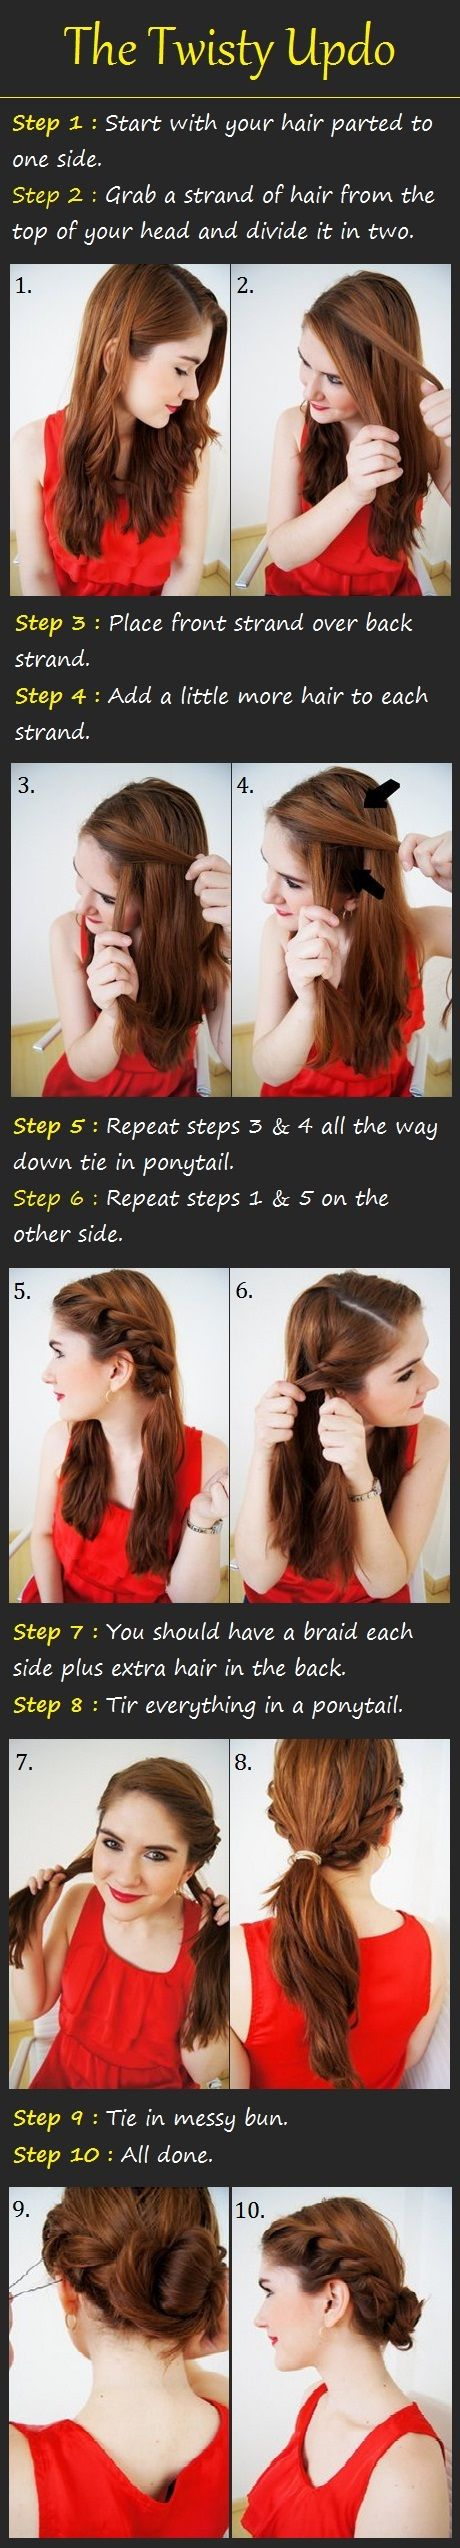 The Twisty Up-do Tutorial